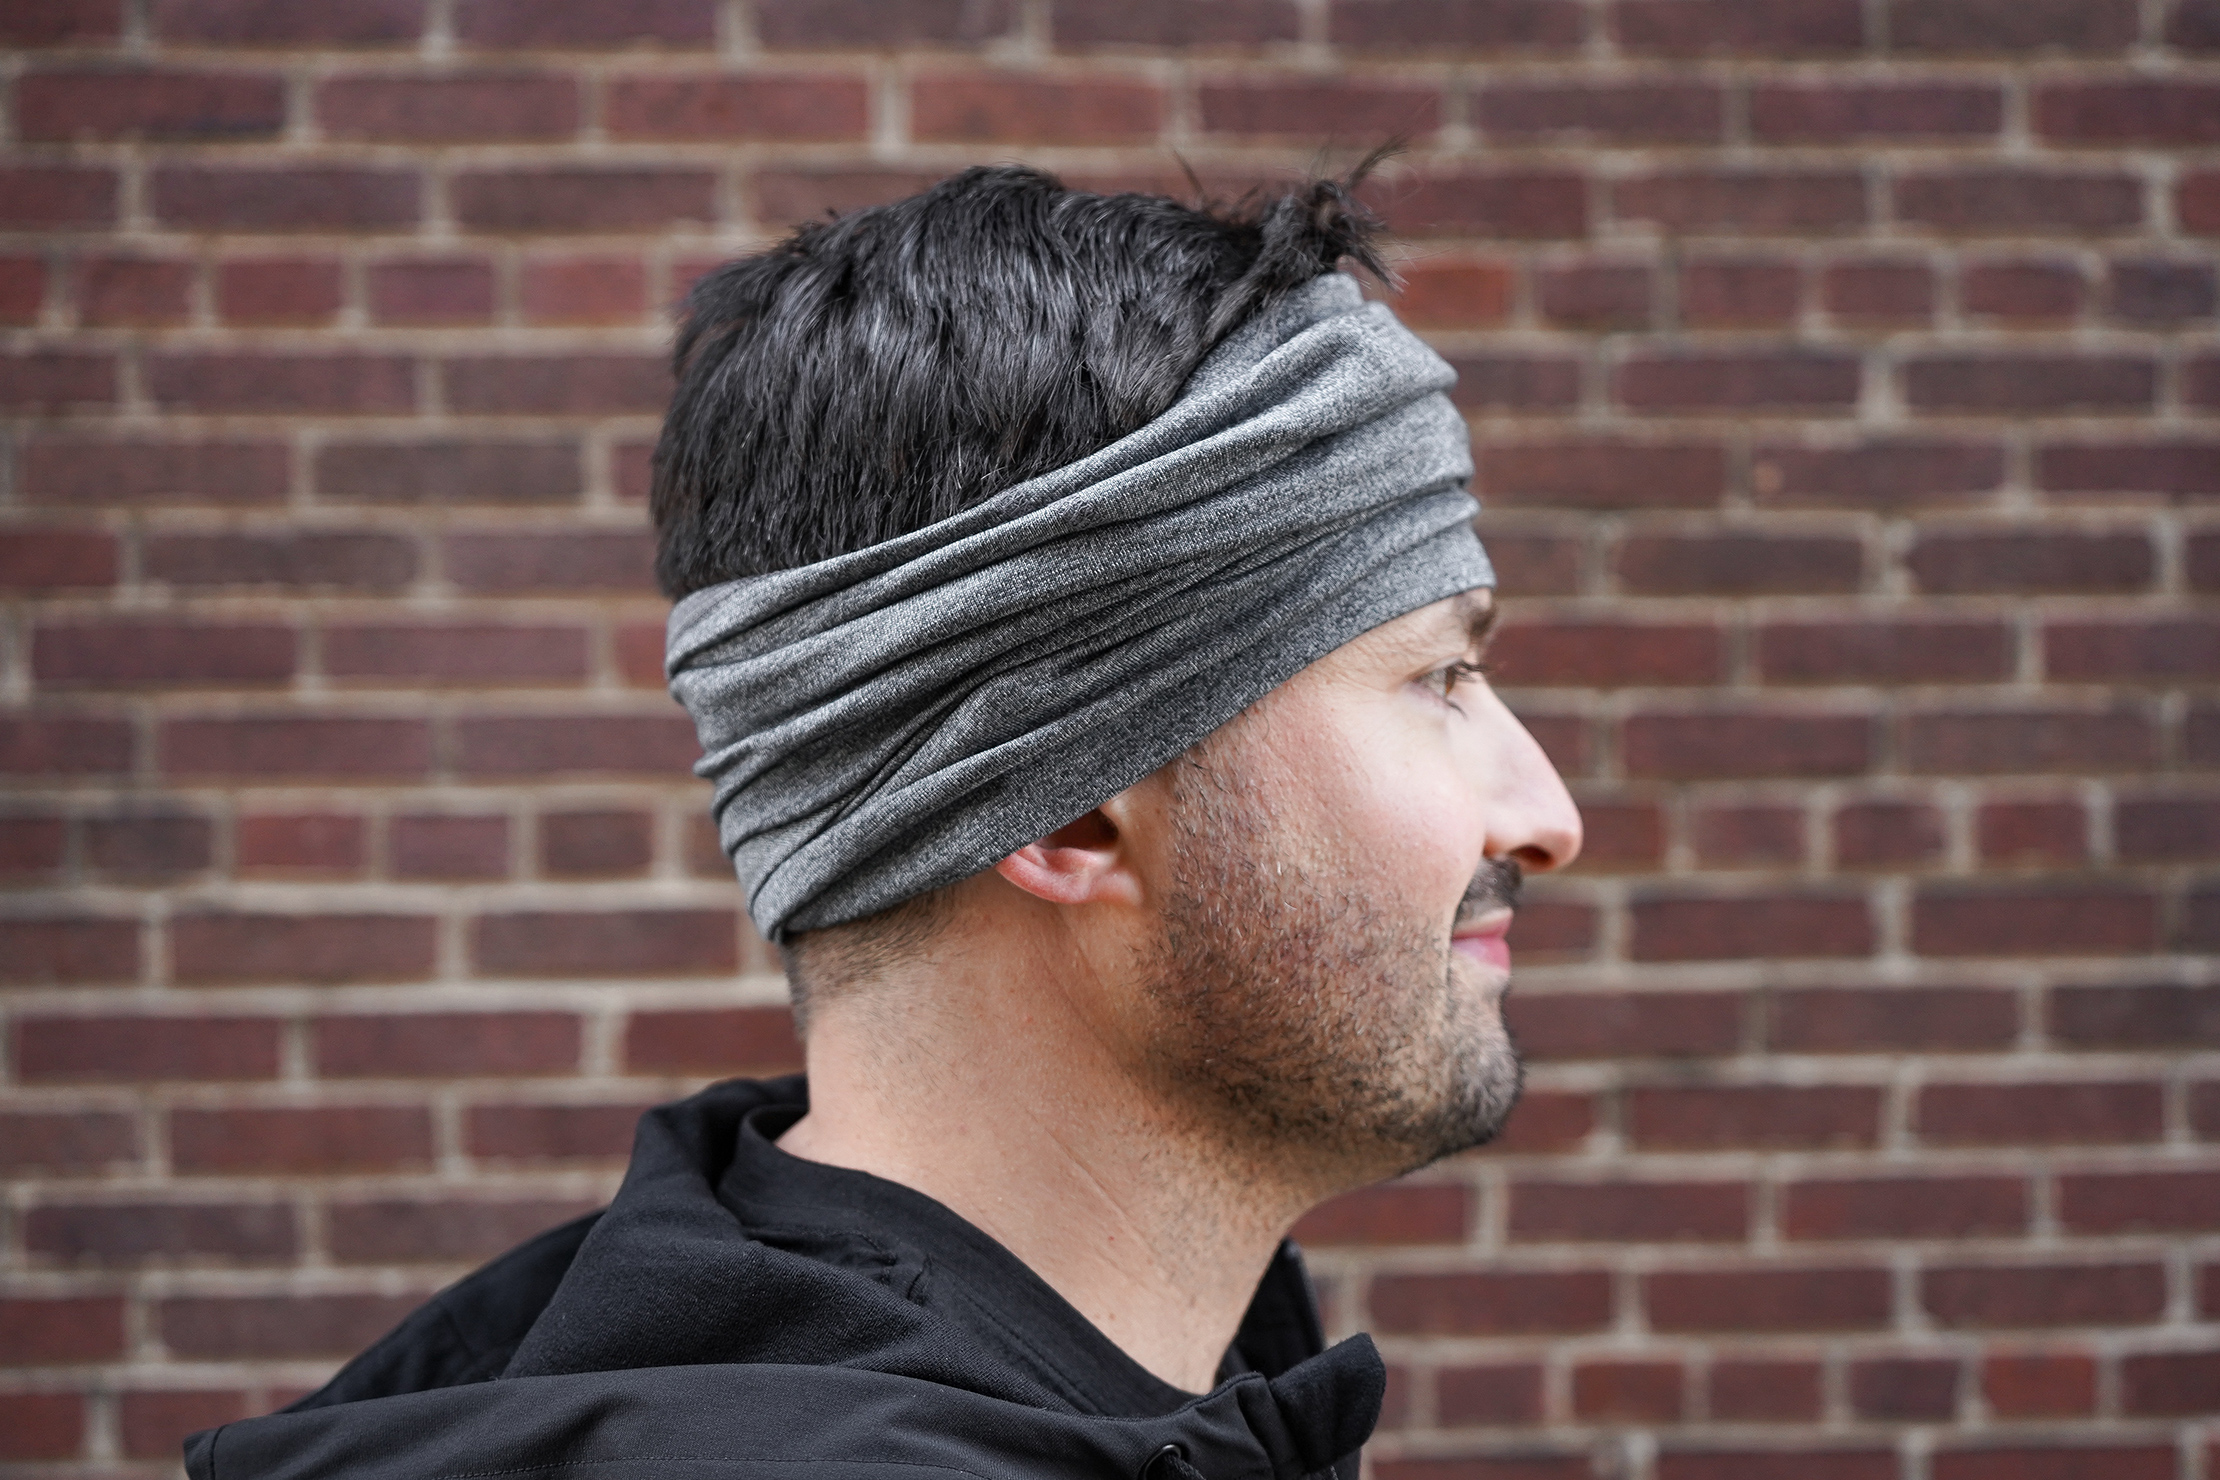 Wool & Prince x Pack Hacker Travel Neck Tube Worn As A Headband